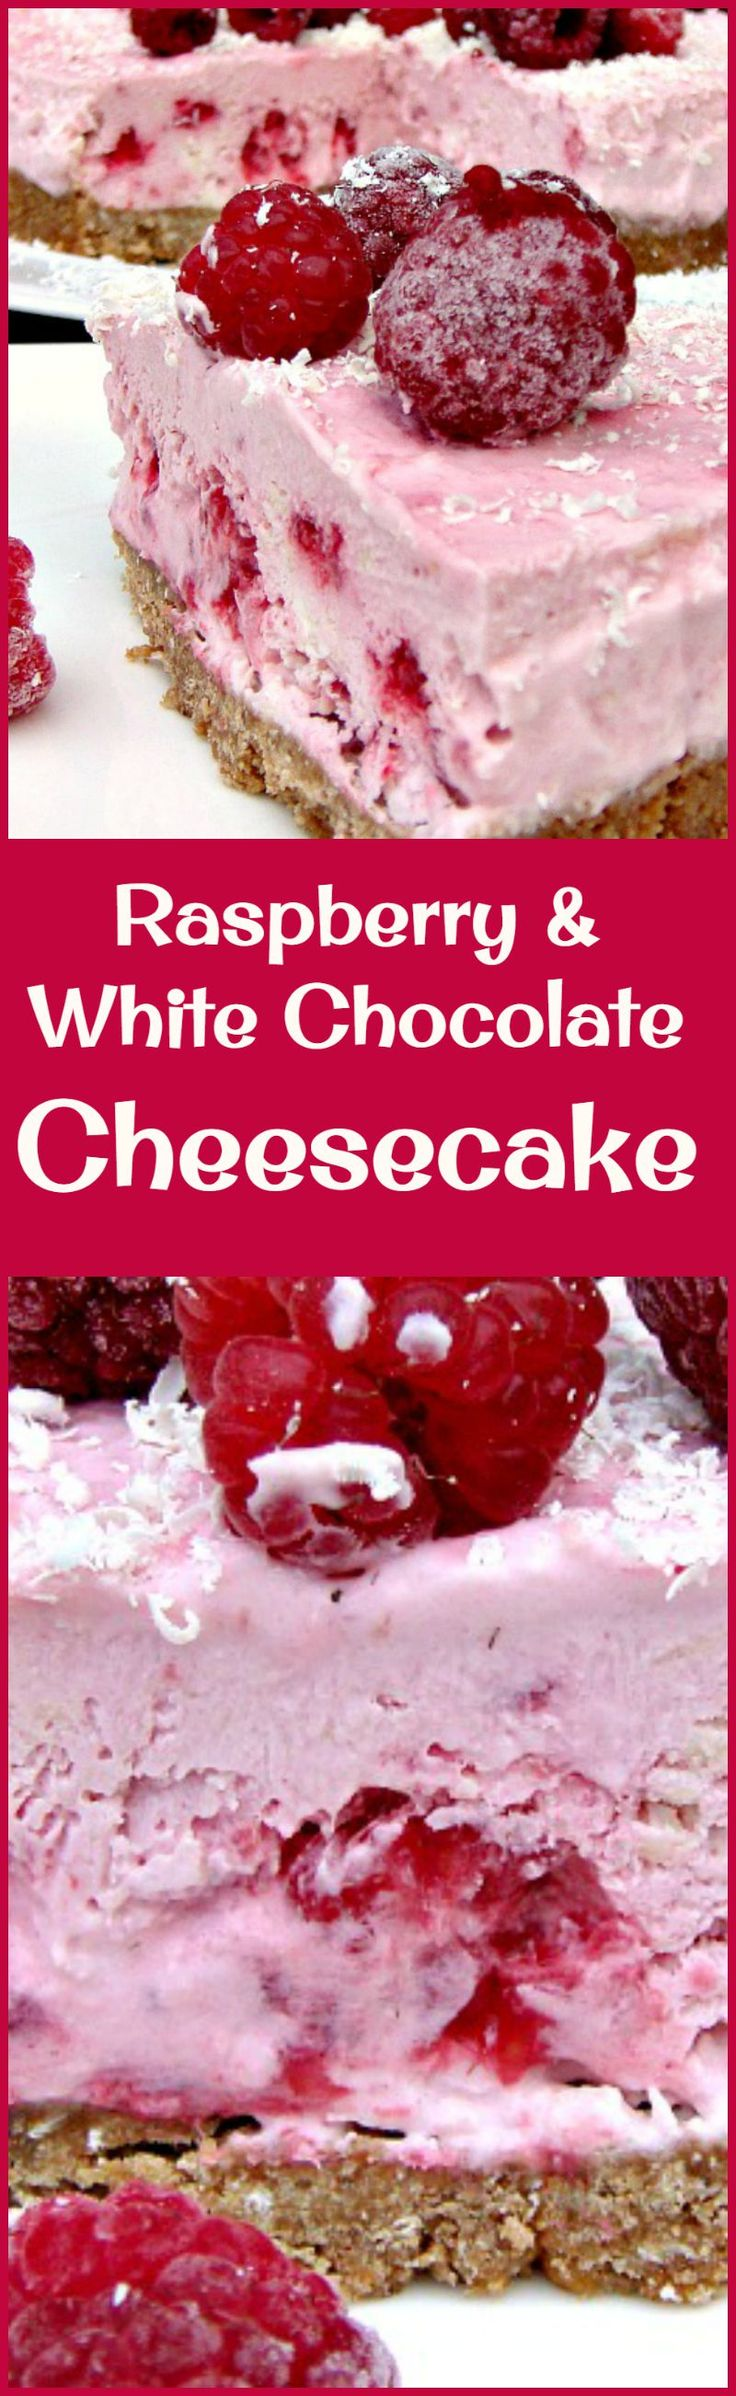 Raspberry & White Chocolate Cheesecake - A refreshing No Bake Cheesecake with a gentle hint of white chocolate. Really delicious! You can eat this Semi Frozen or simply chilled. Both ways are nice!